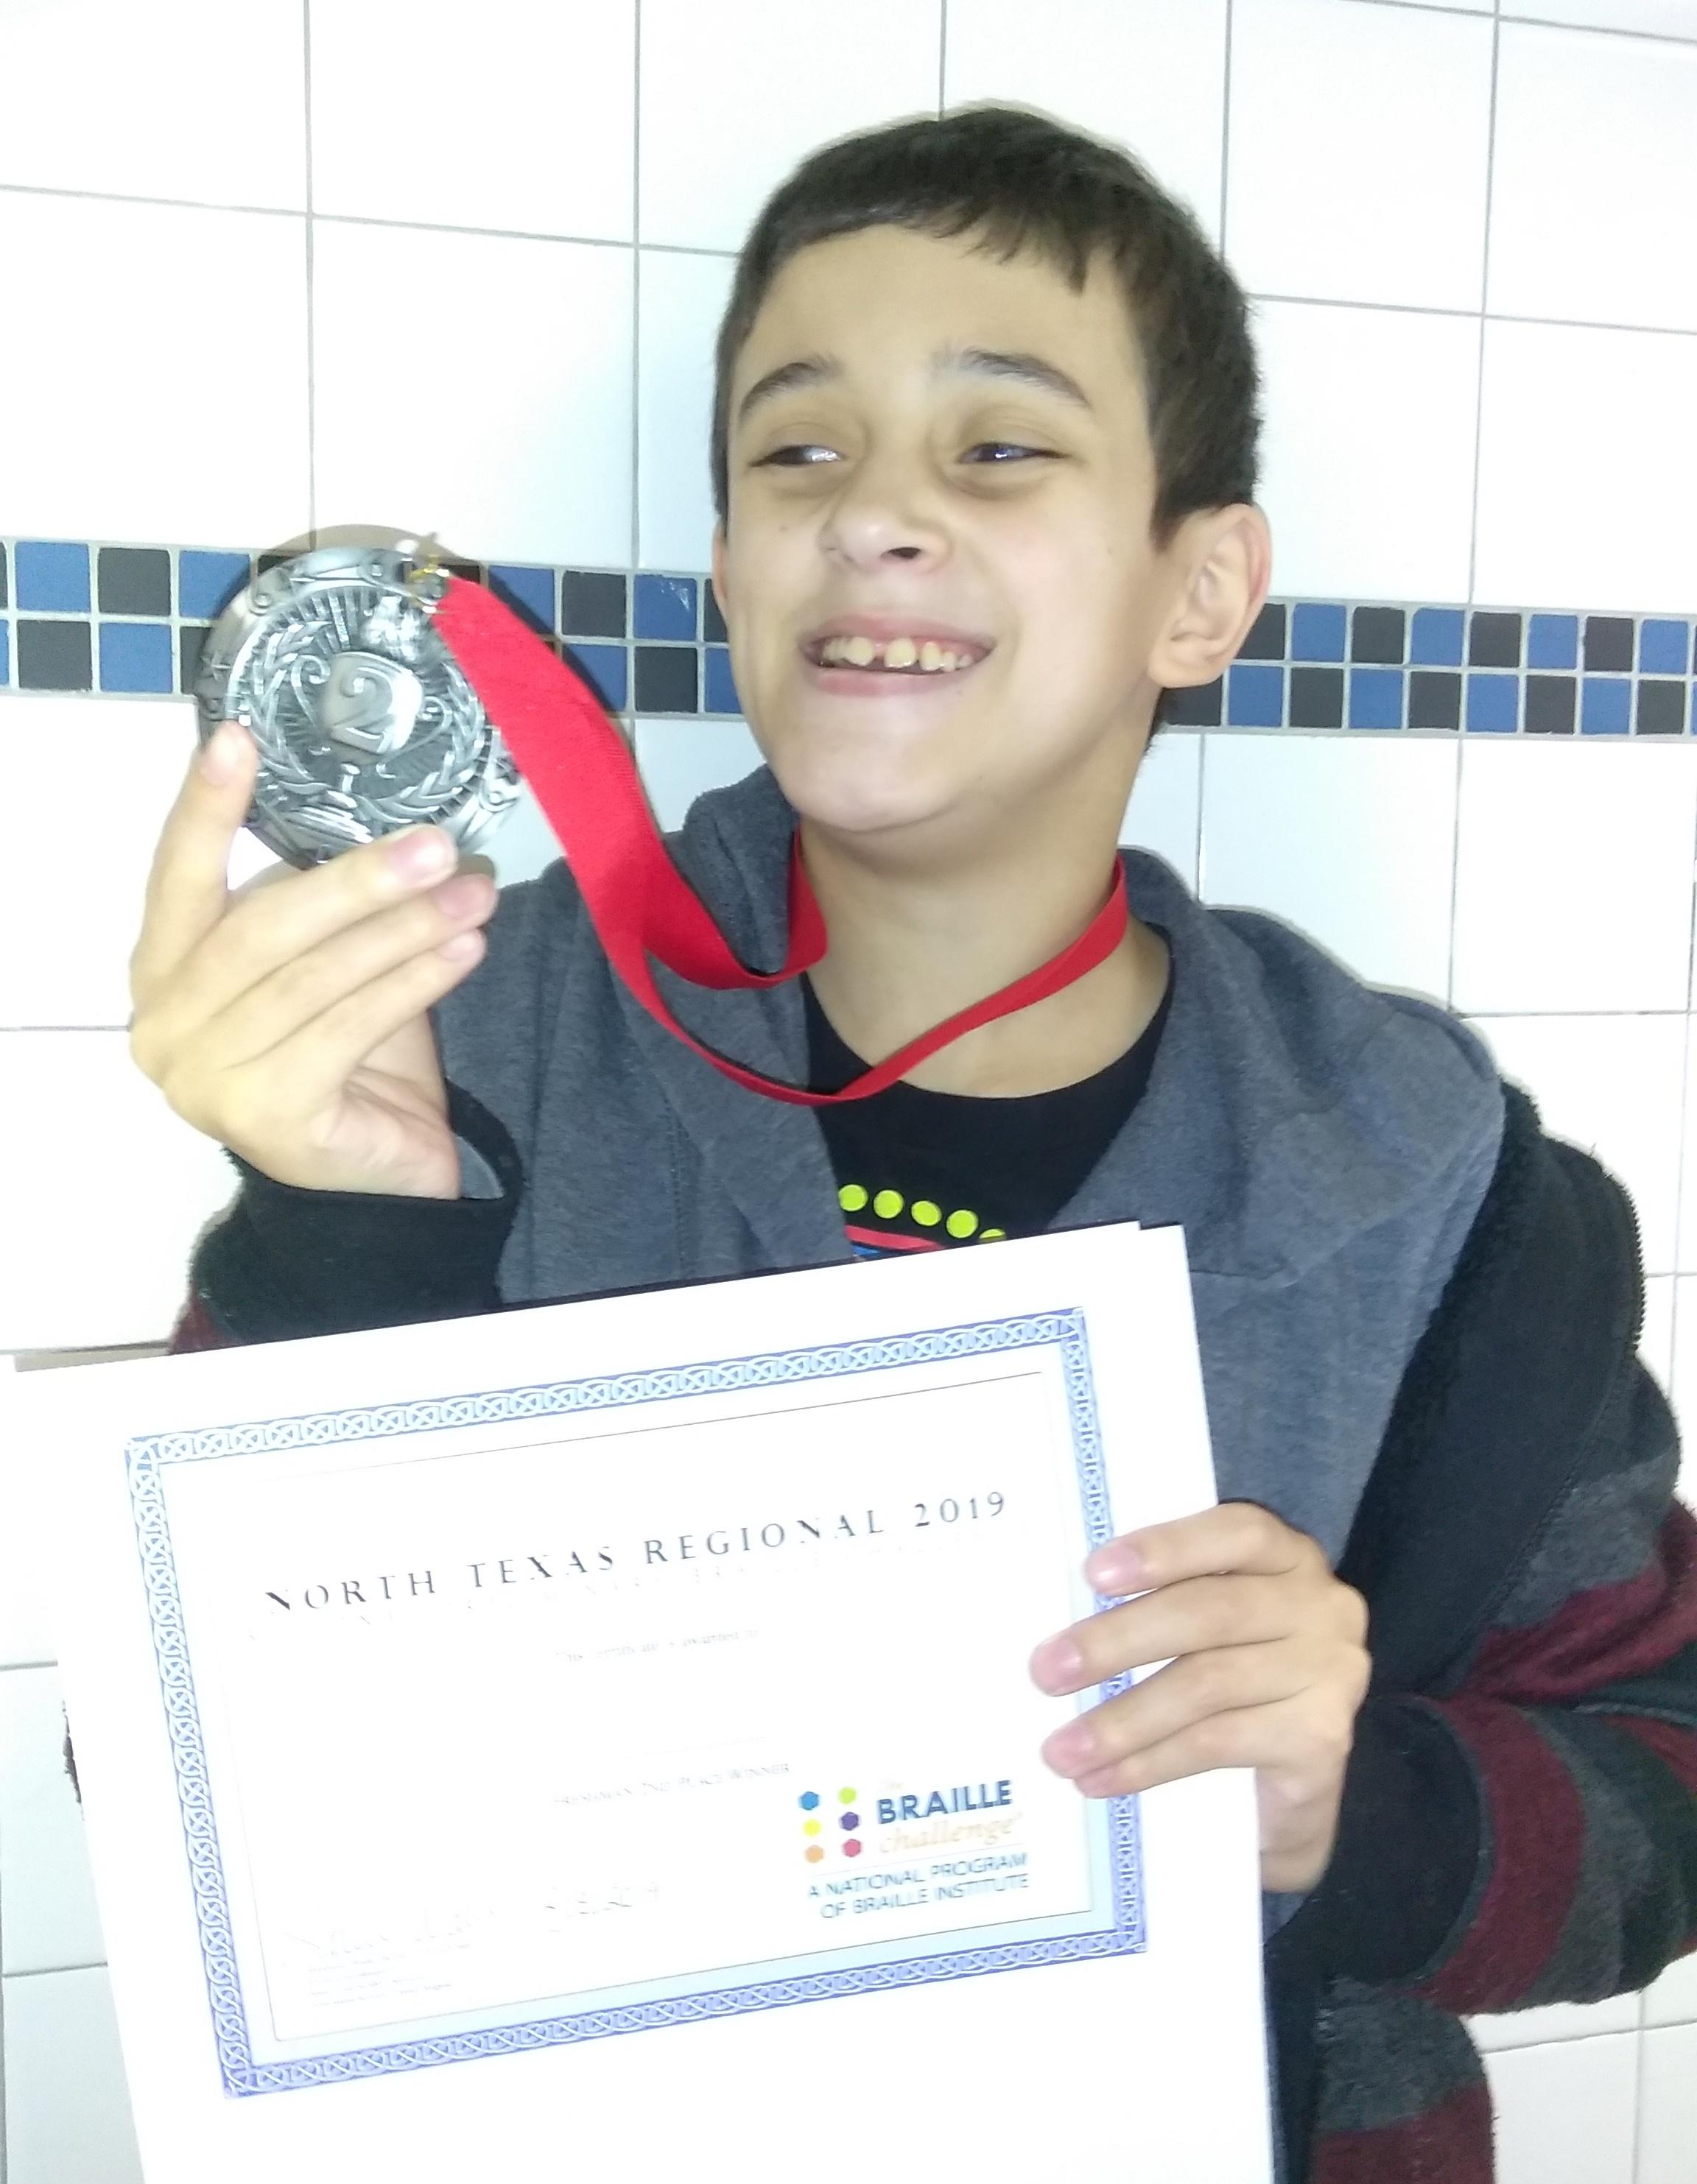 Brewer Middle School seventh grader Alex Flores recently won second place in the region in the freshman division of the Braille Challenge.